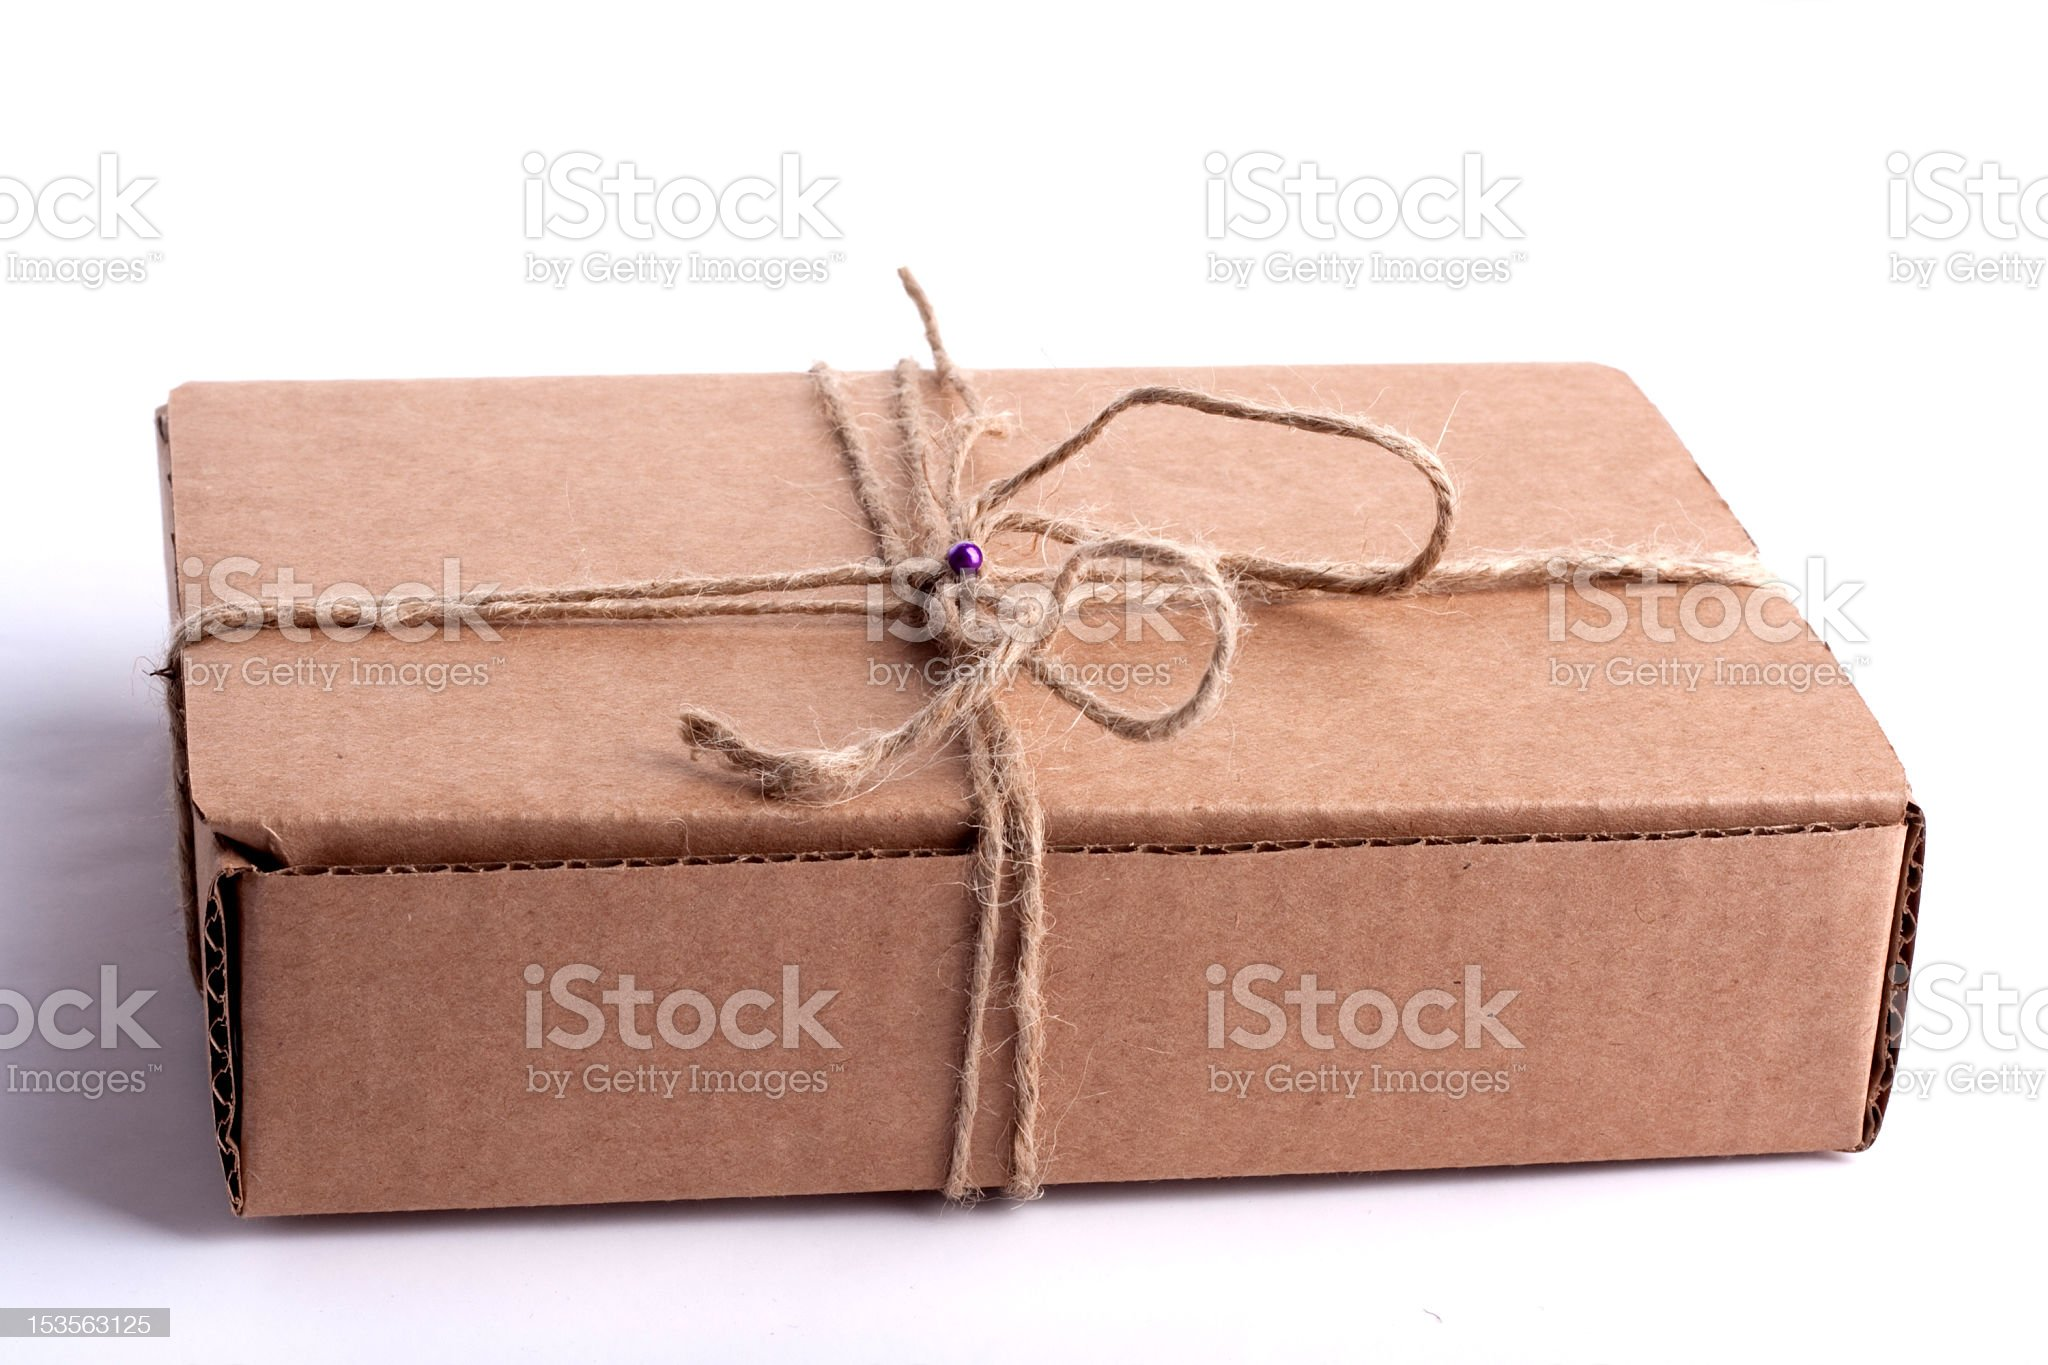 carton, cardboard, rope royalty-free stock photo